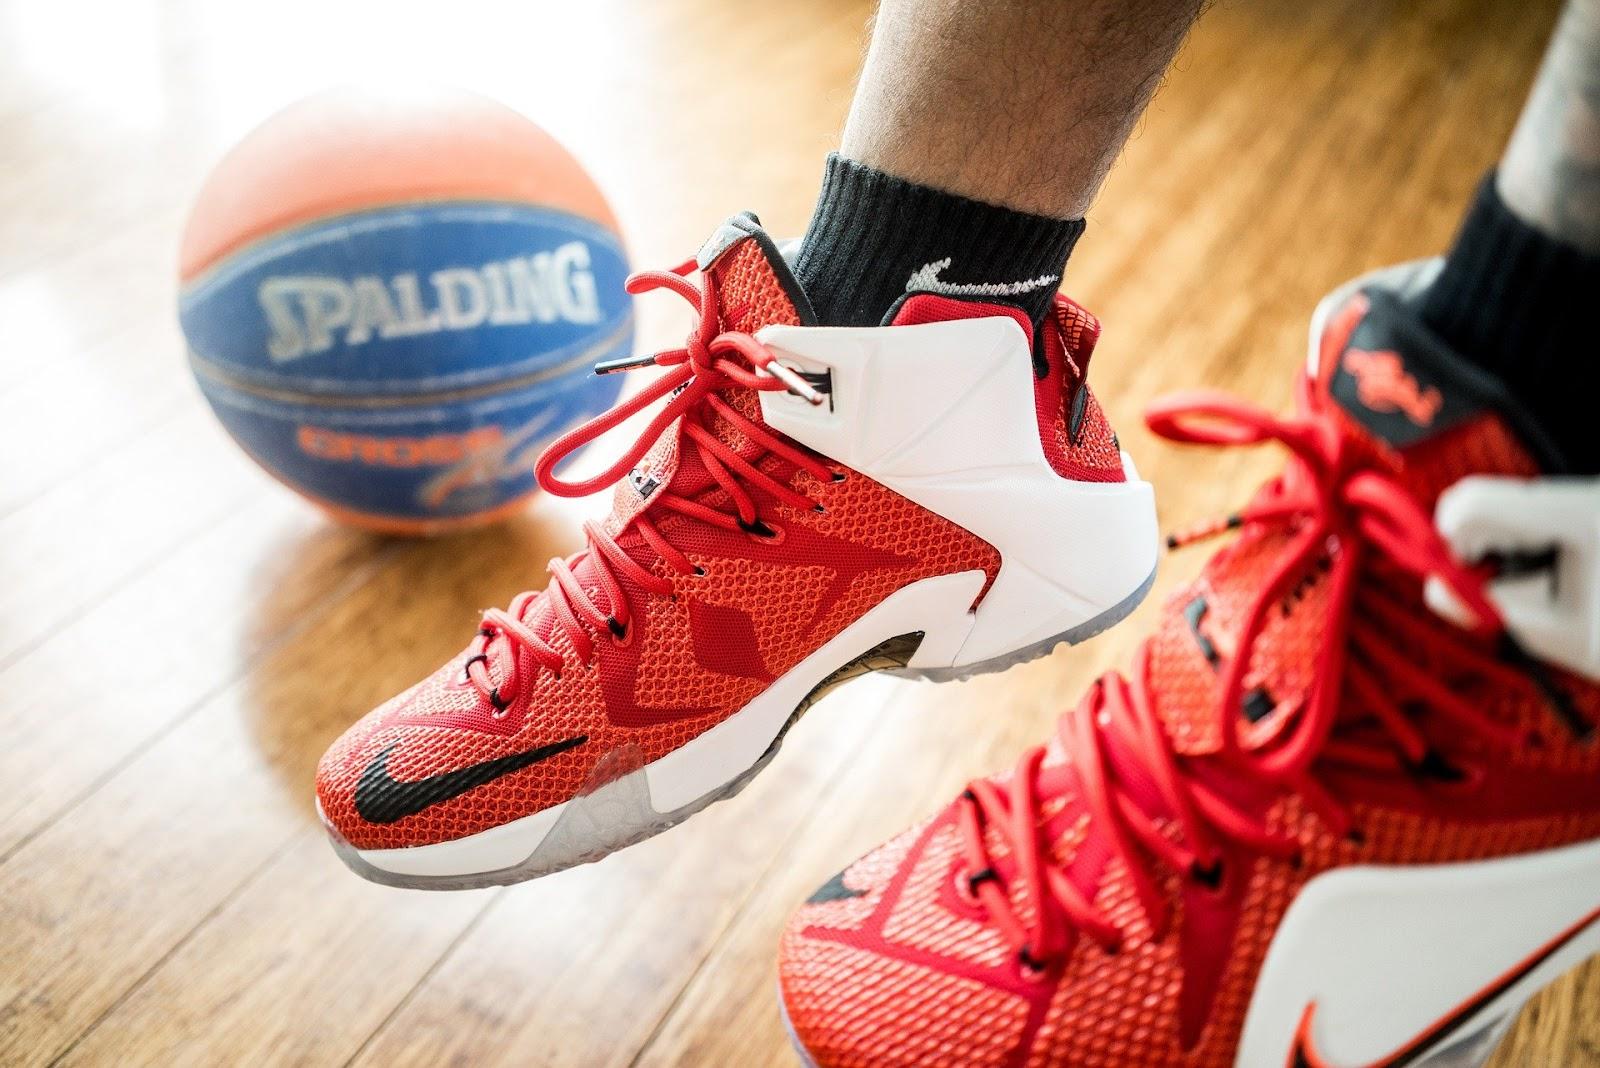 Best Basketball Shoes Under 100